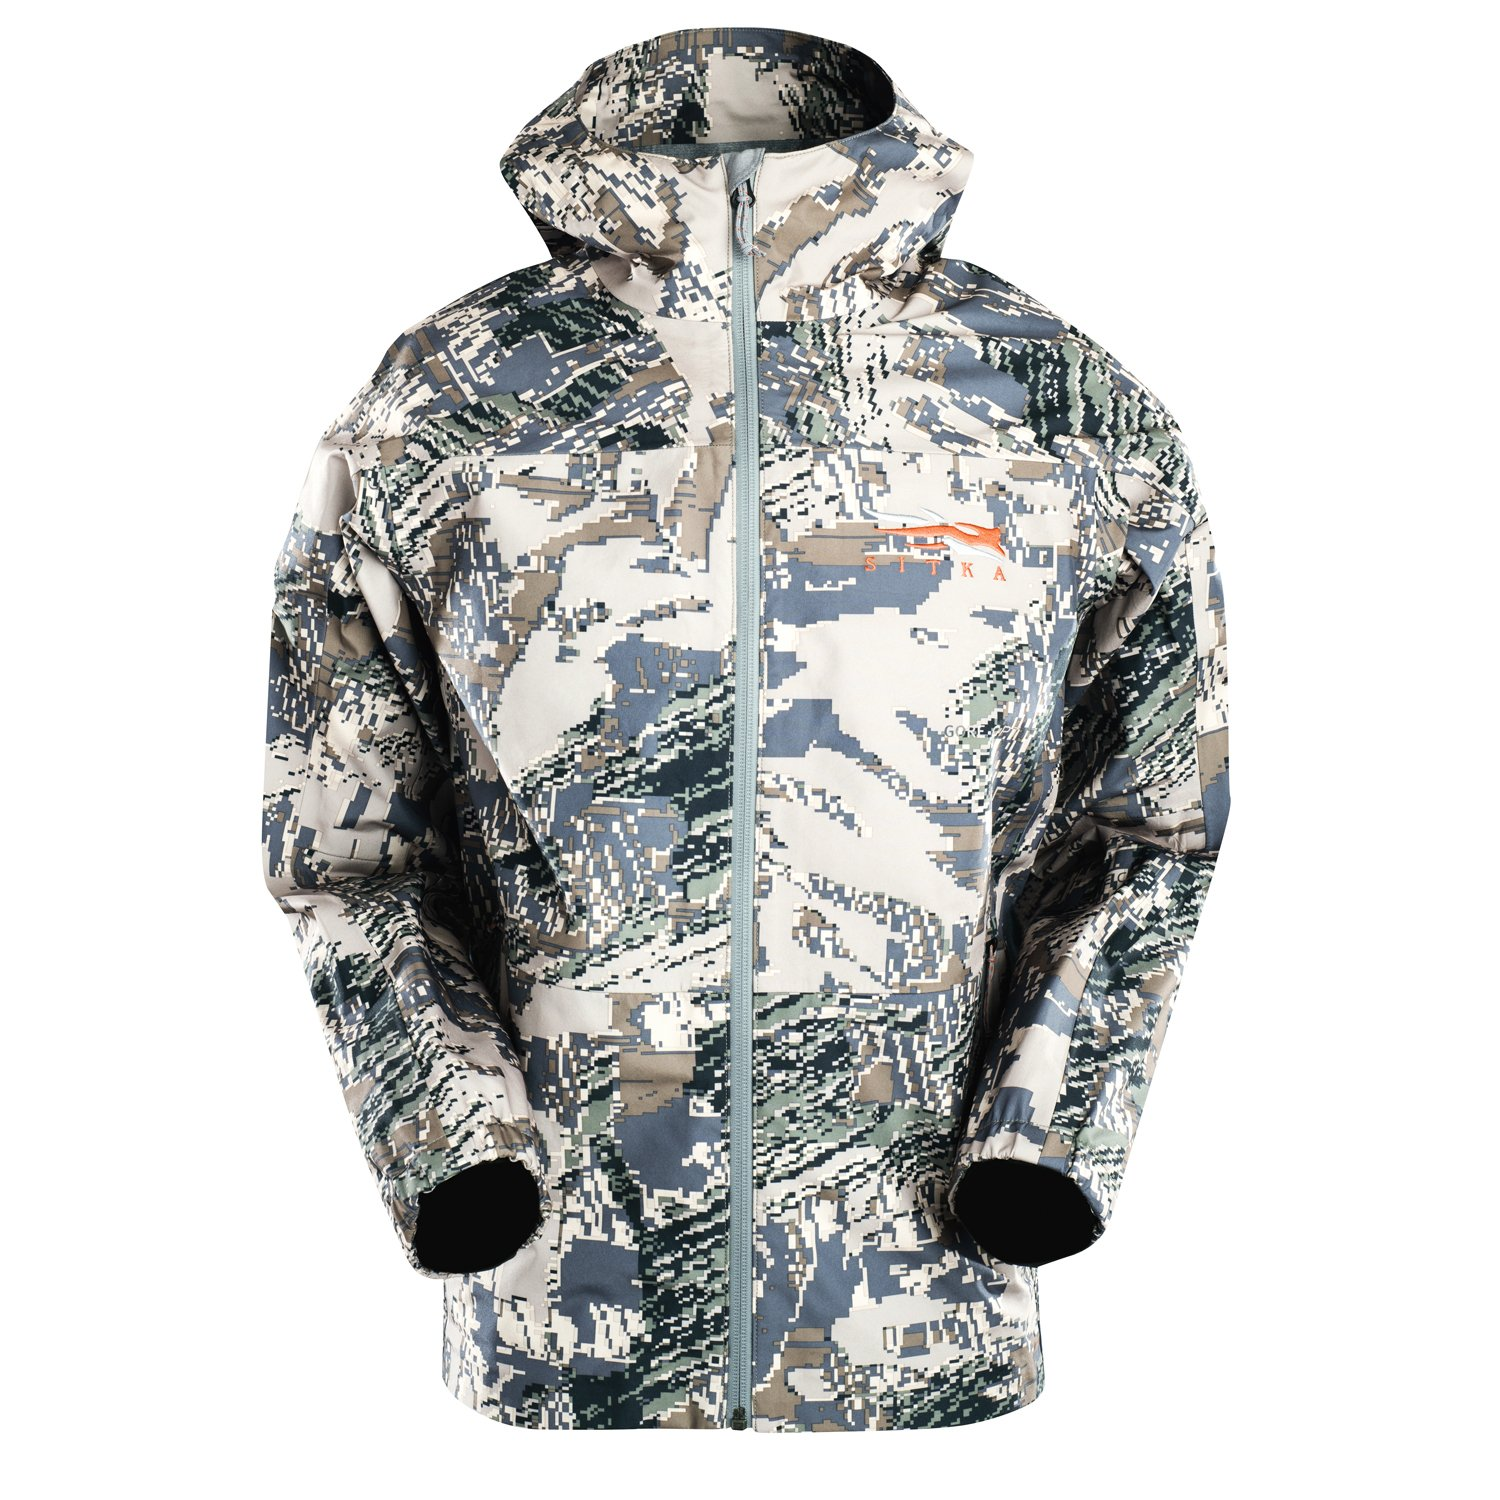 SITKA Gear Cyclone Jacket Optifade Open Country Youth Medium - Discontinued by SITKA